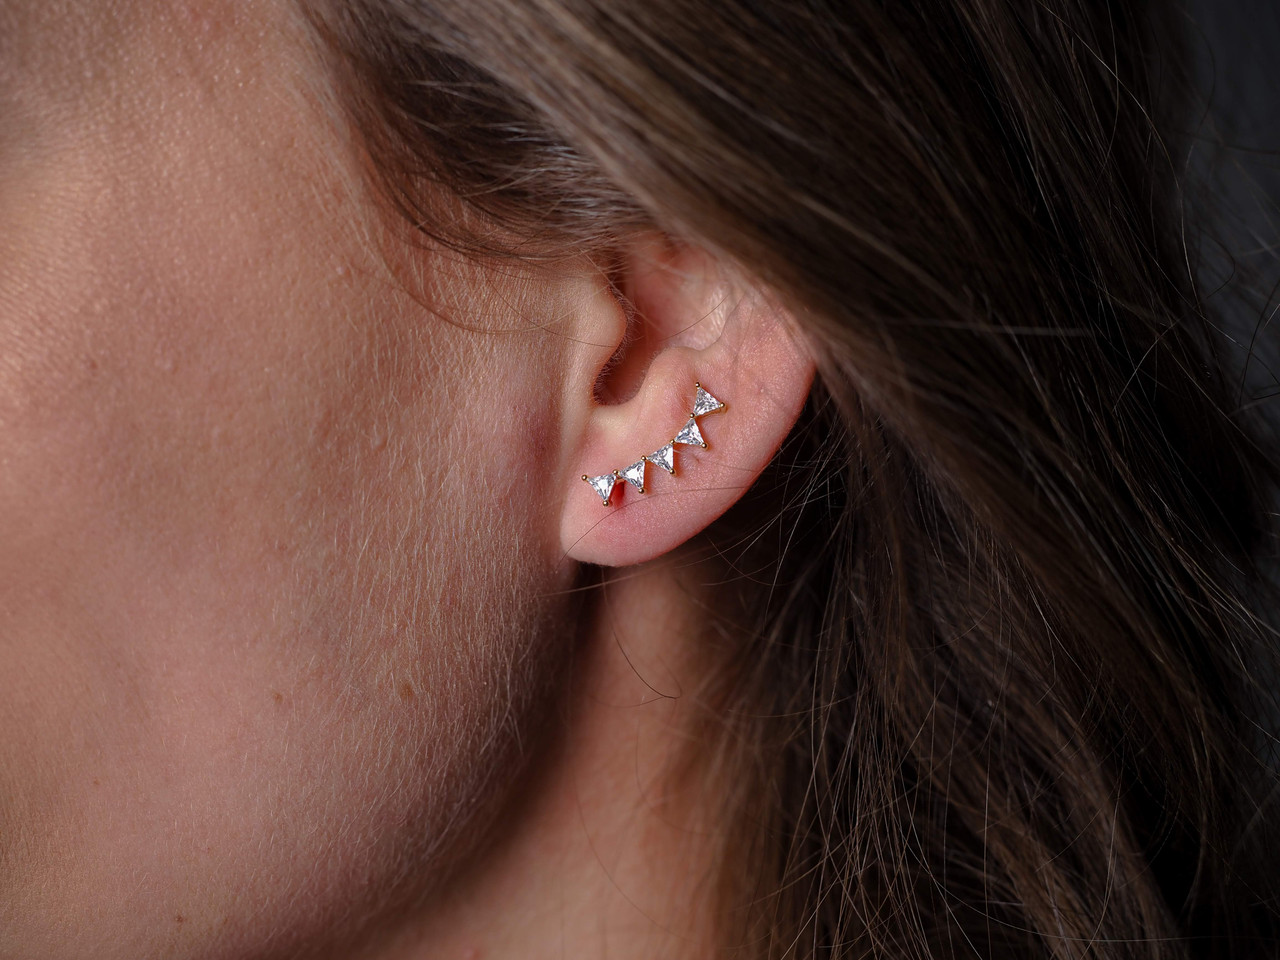 Triangle cubic zirconia crawler earrings, Available in GOLD or SILVER, Sterling silver post, Nickel and lead free.